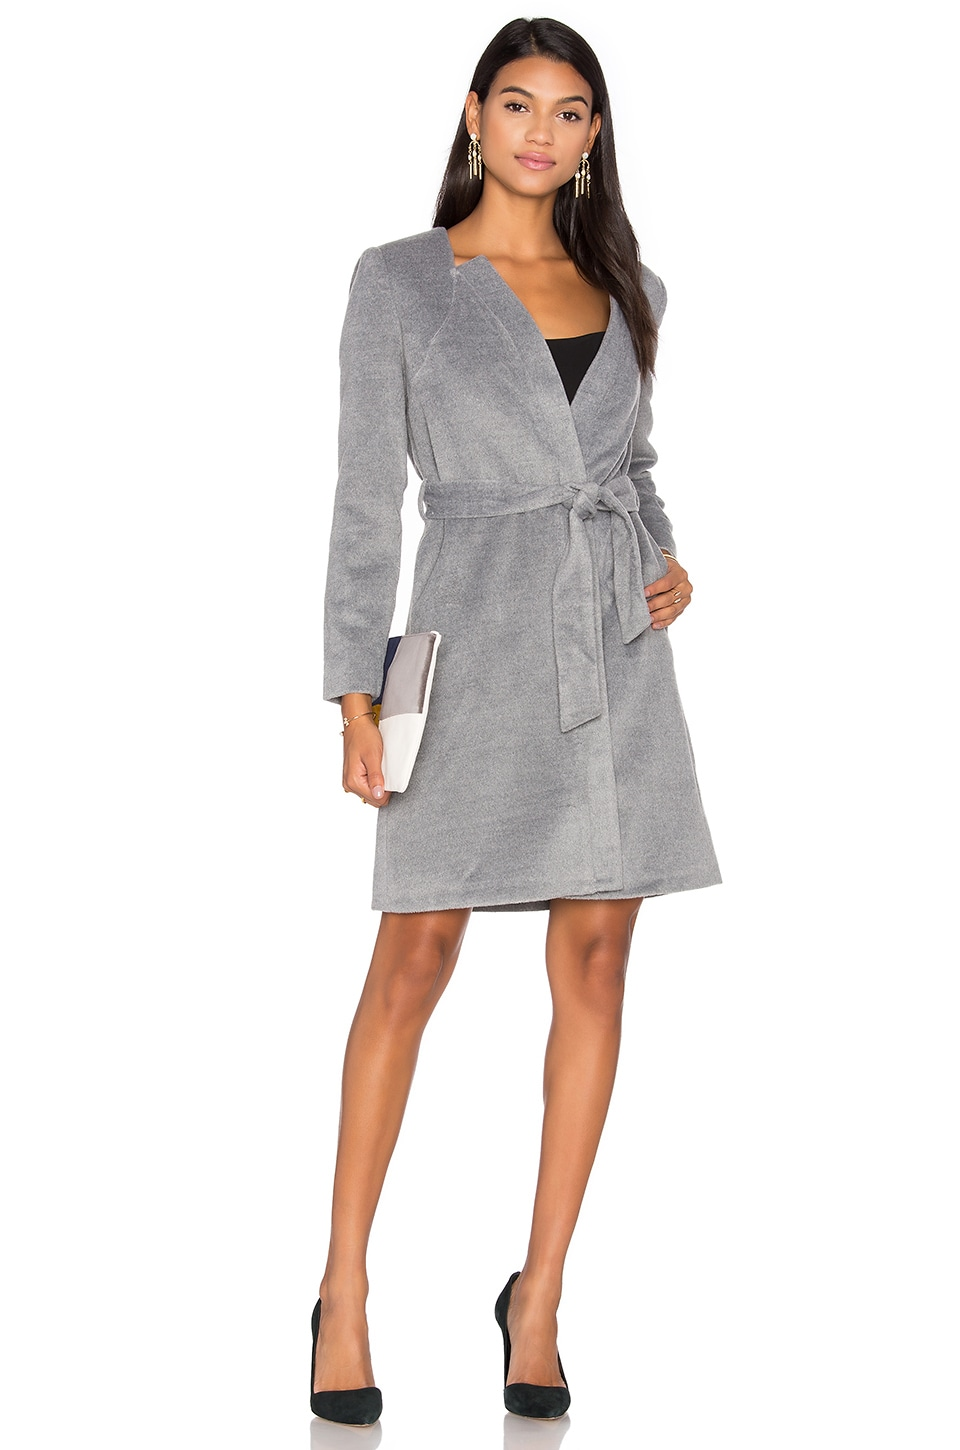 Phoebe Coat by State of Being